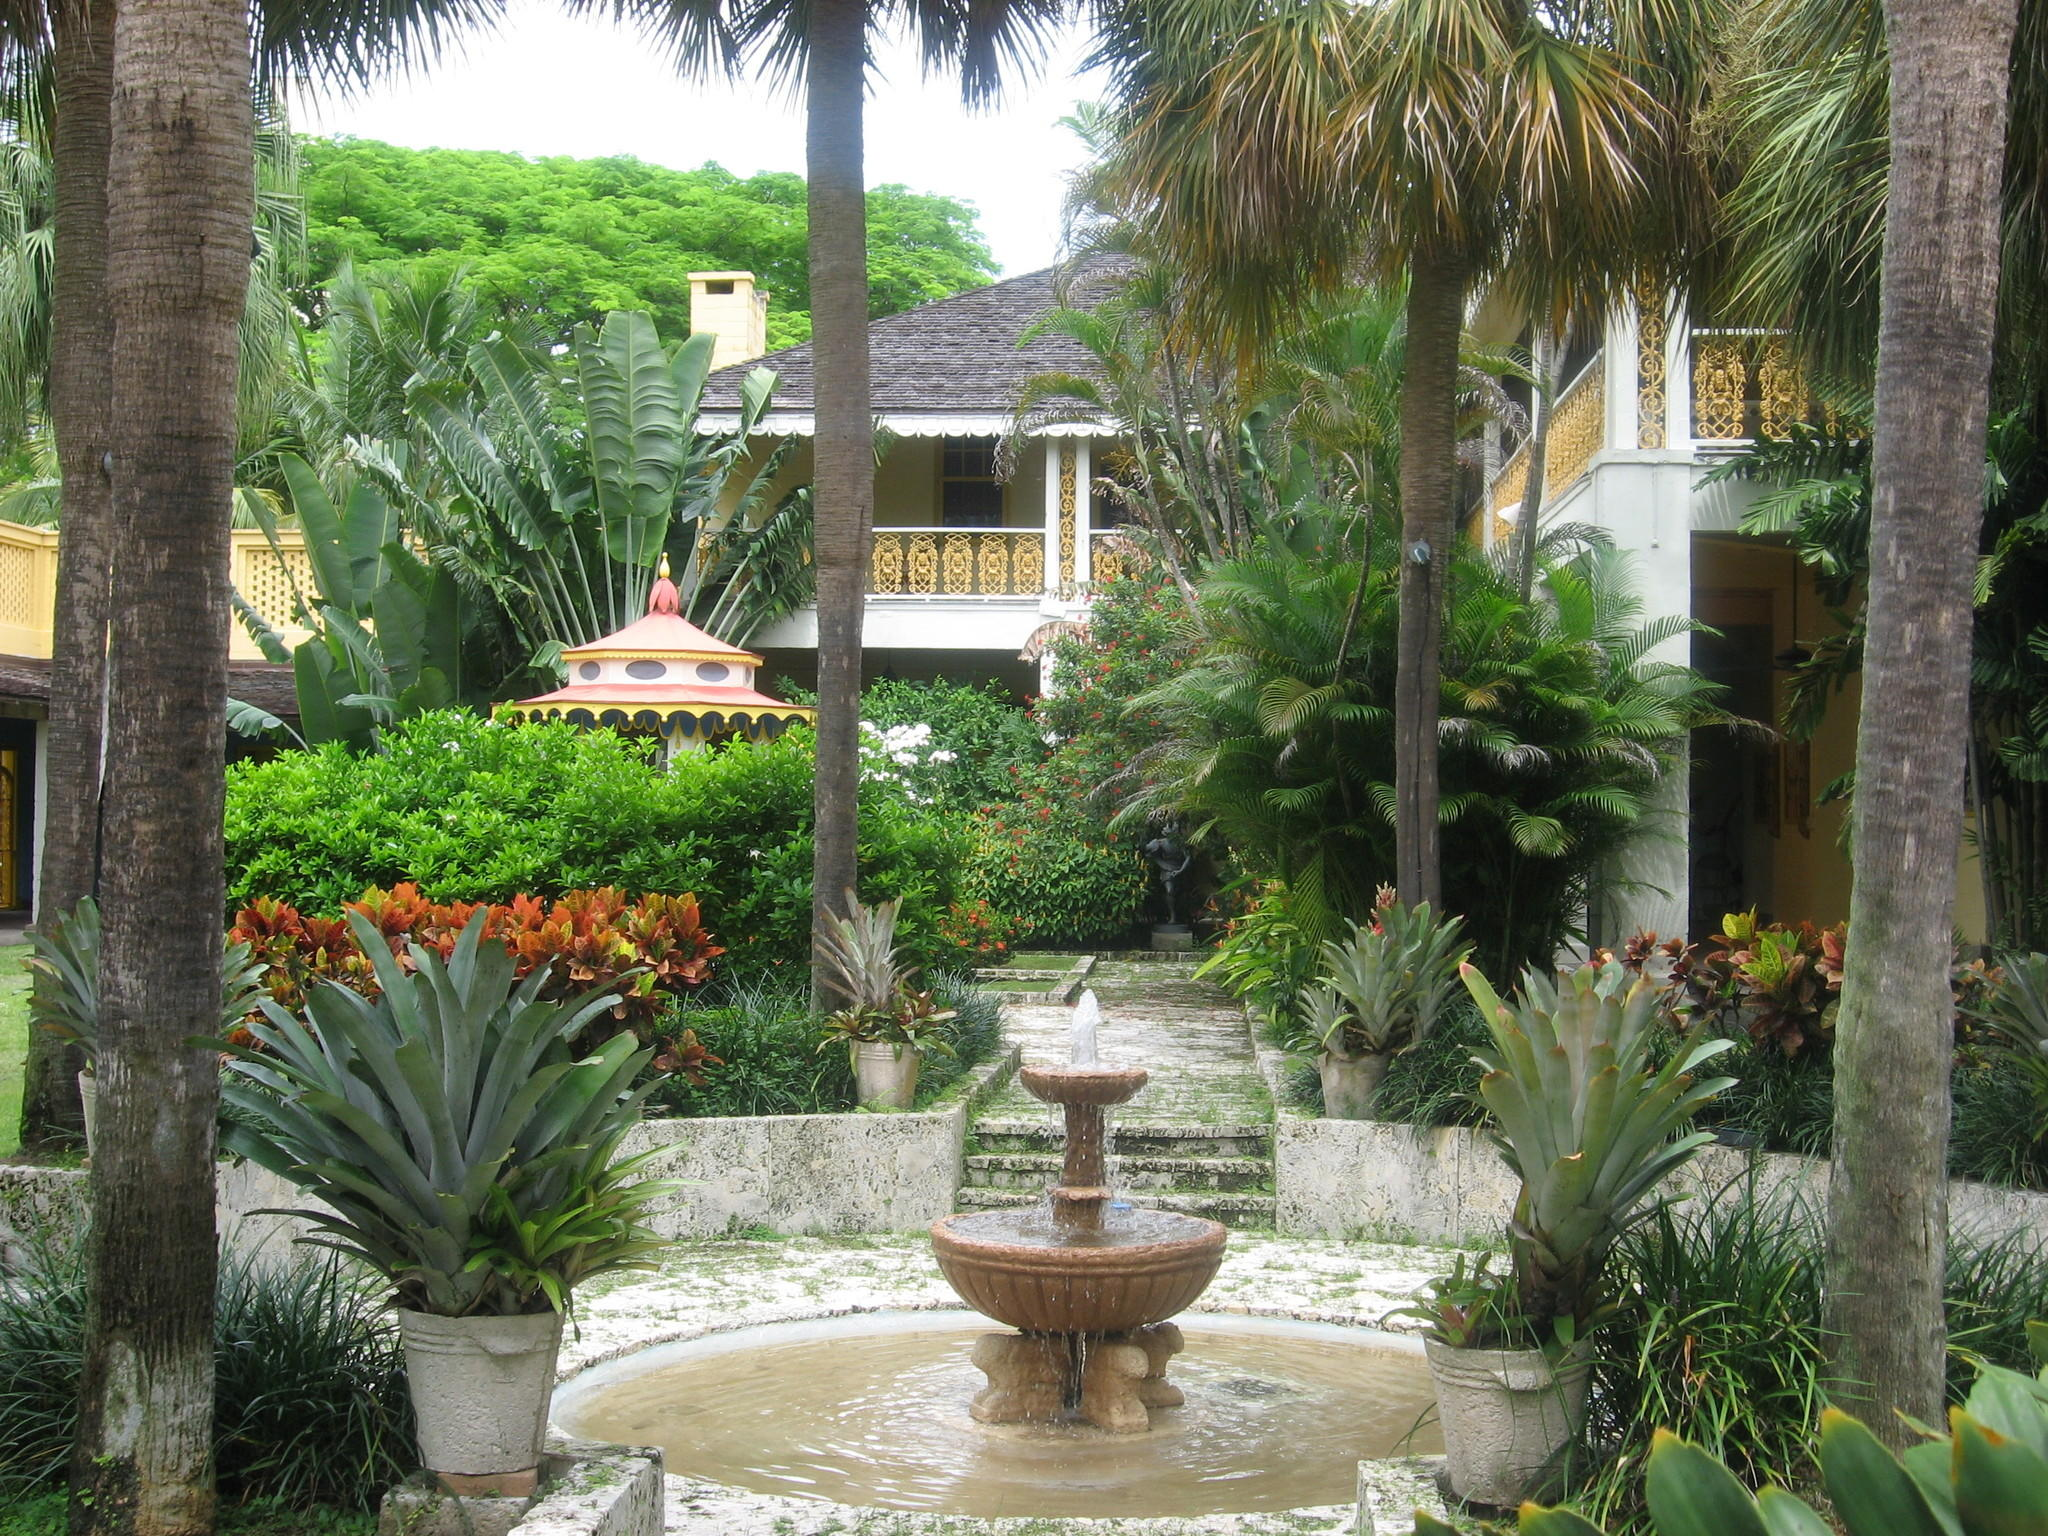 The interior courtyard at the Bonnet House Museum & Gardens in Fort Lauderdale.